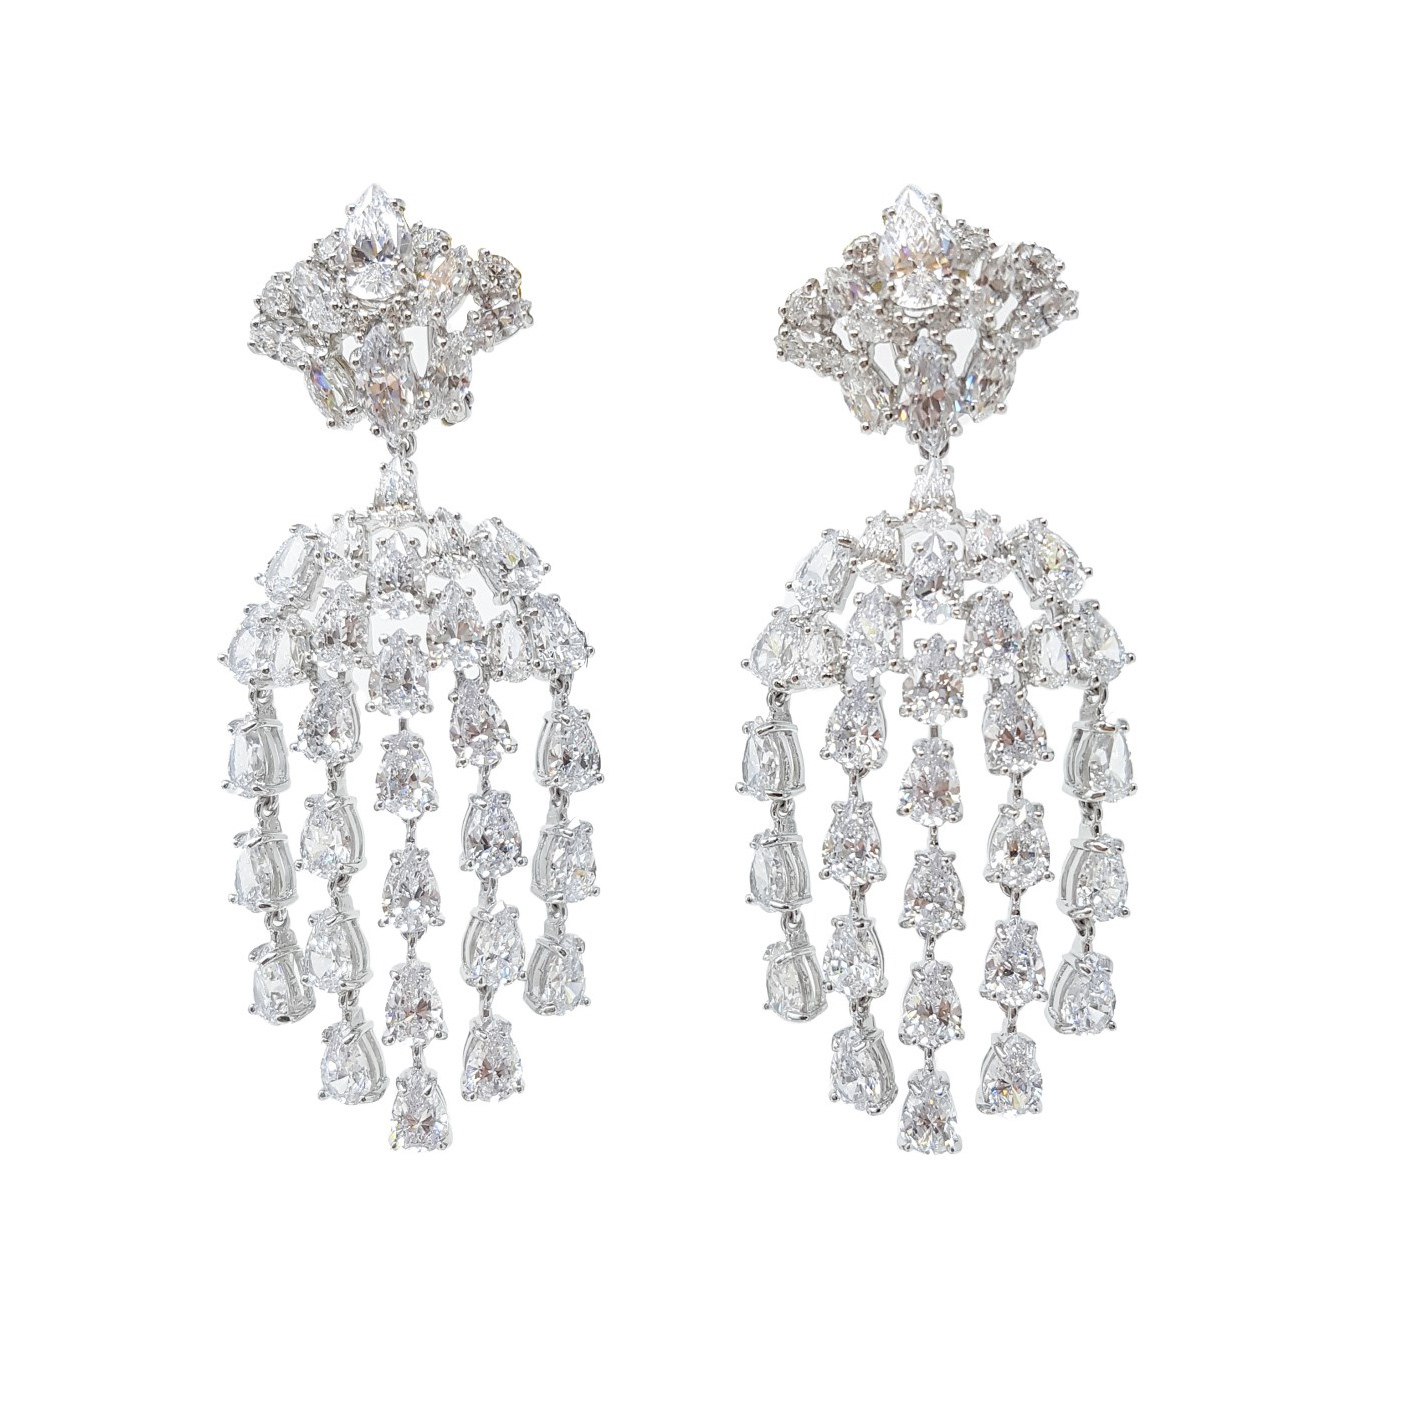 Seme del Melograno earrings worn by Naomi Campbell